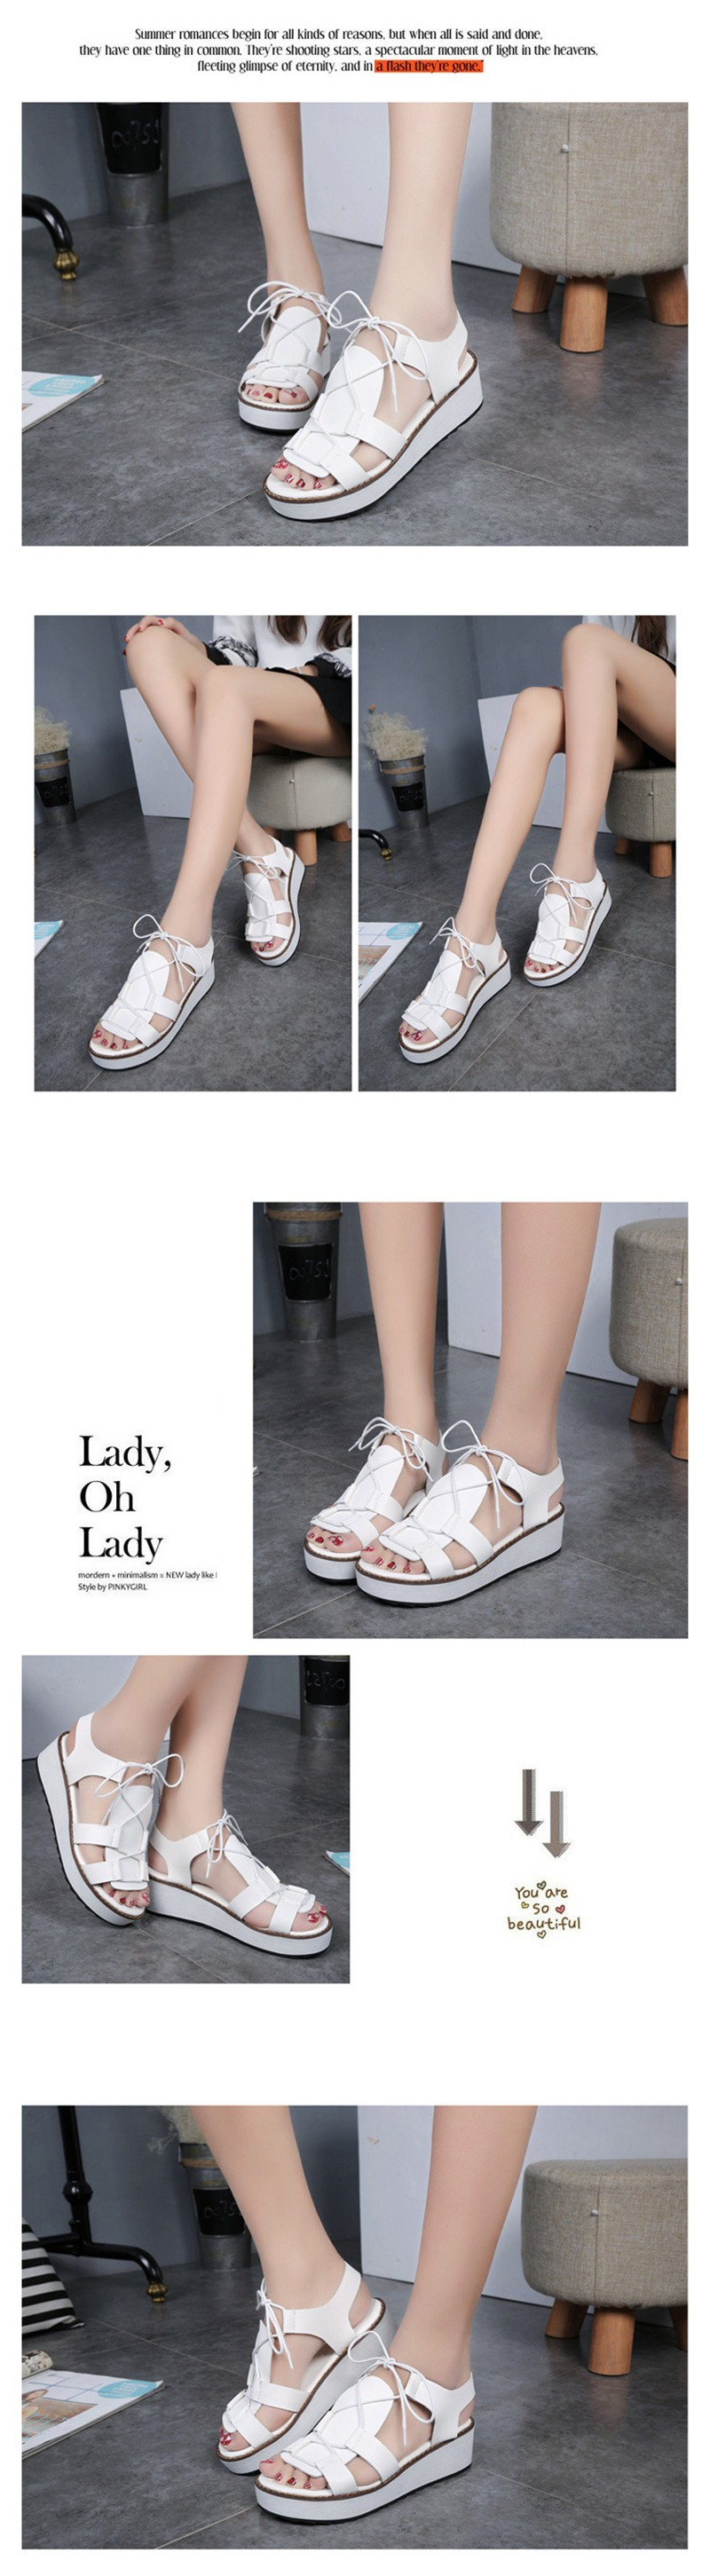 Hot Sale New Spring Summer Fashion Sandals Thick Soled Shoes Lace-up Black White Women sandals HSD08  (5)